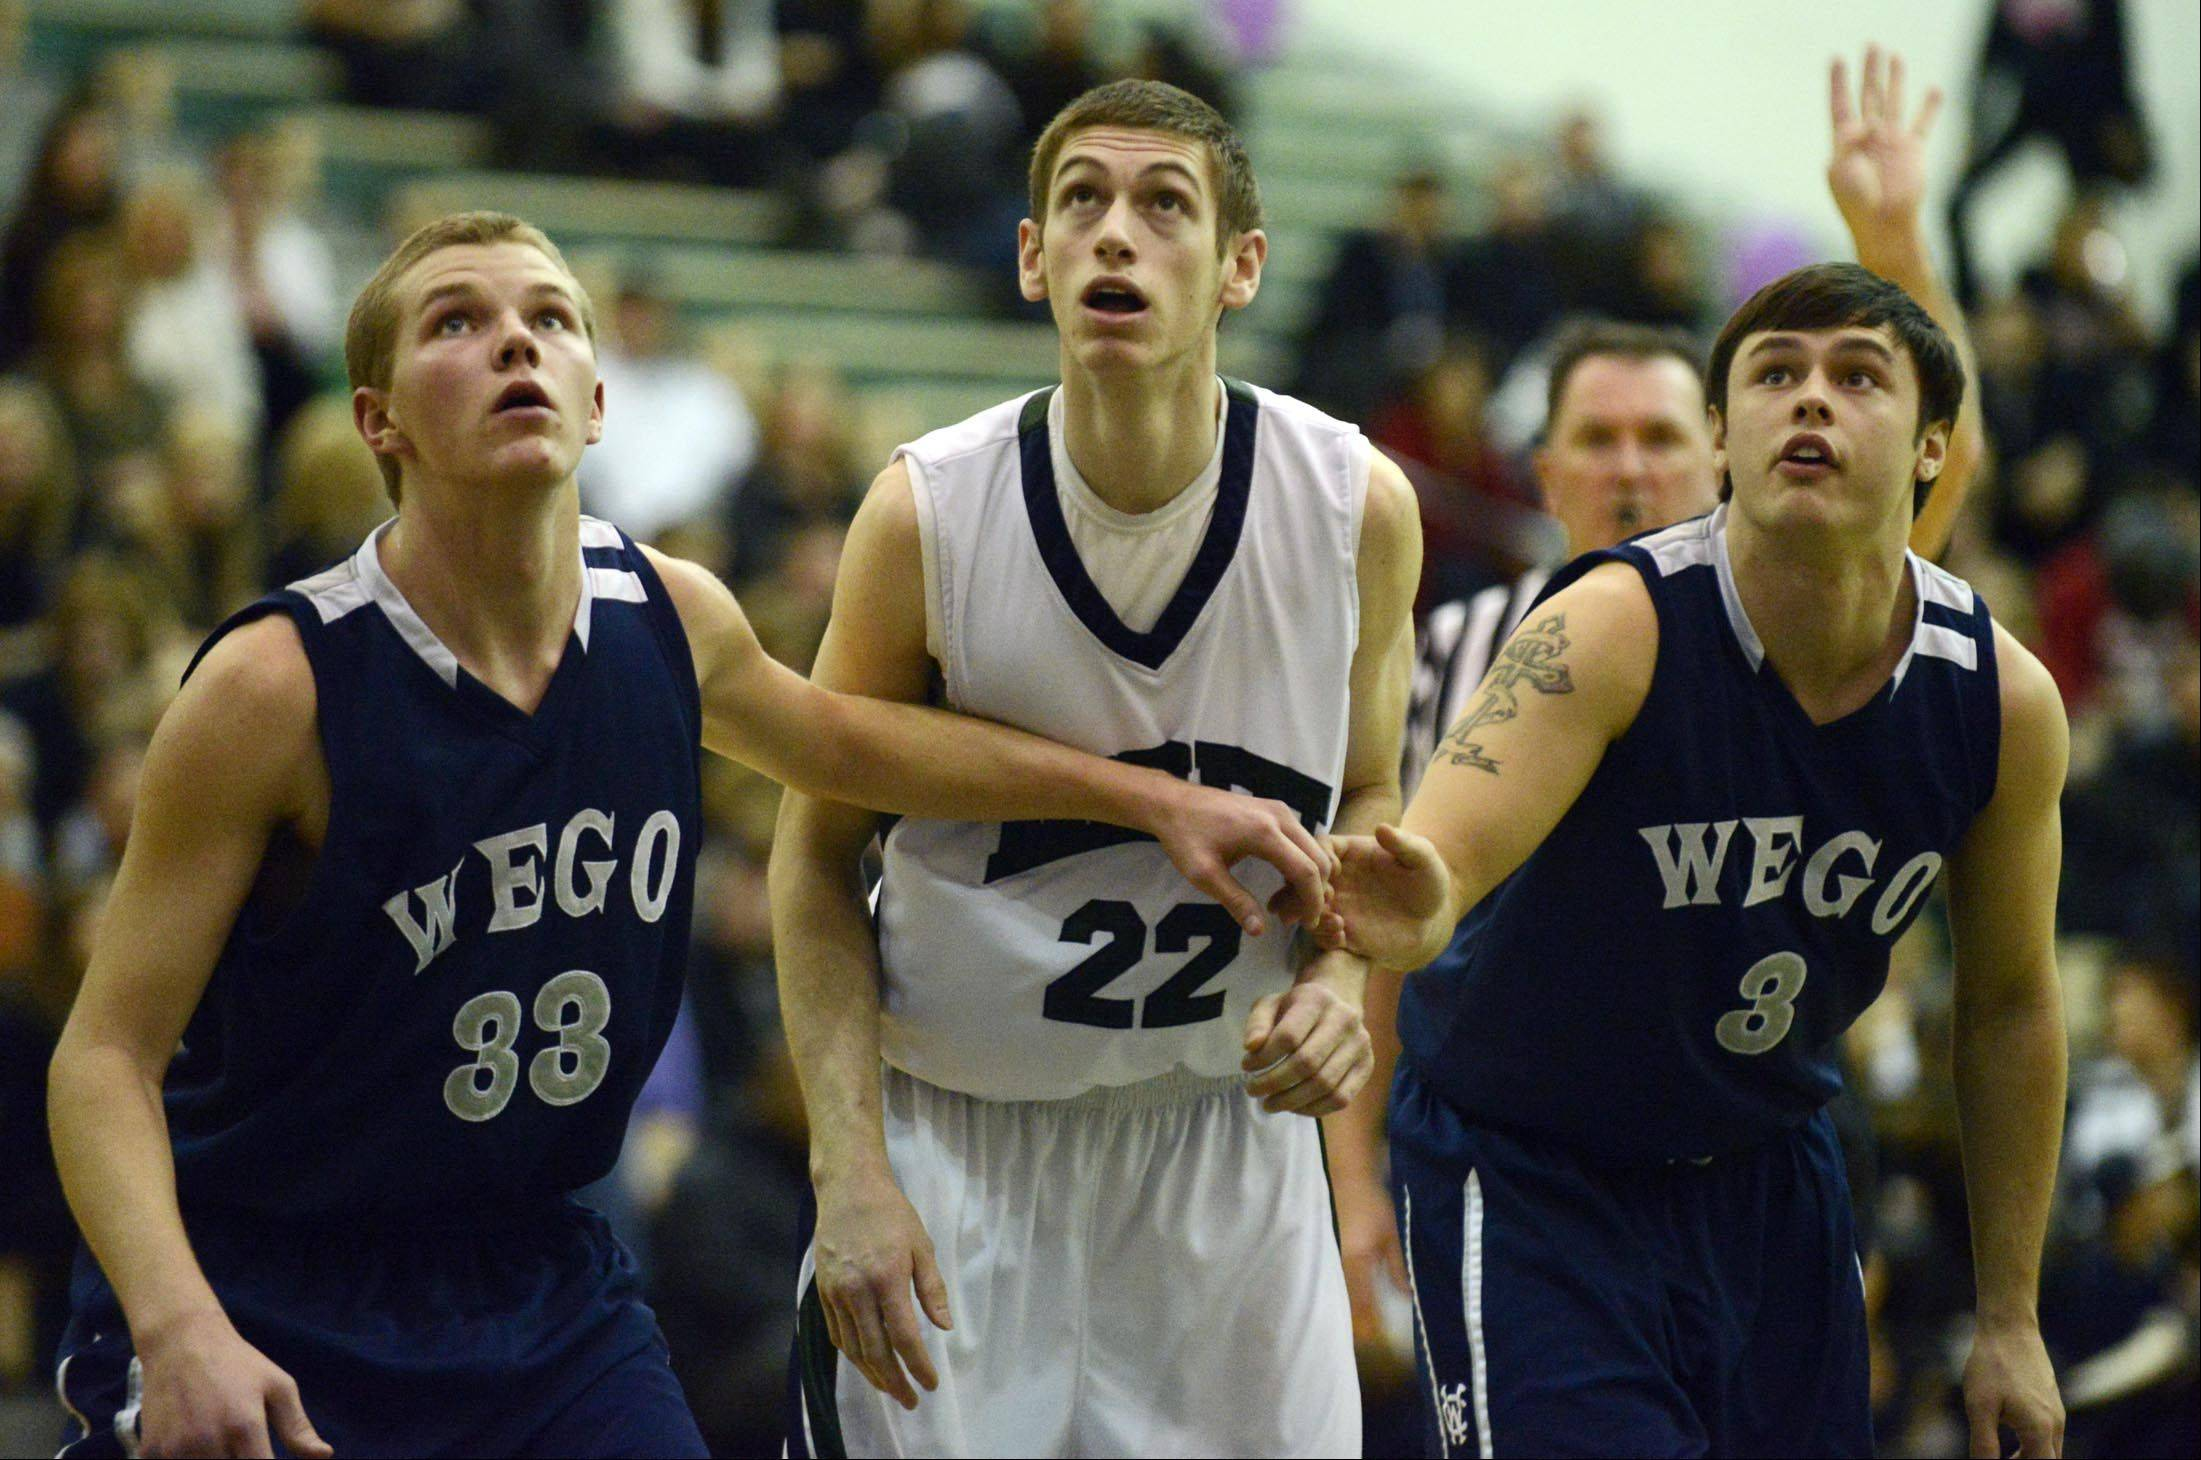 Images from the West Chicago vs. Bartlett boys basketball game Wednesday, January 9, 2013.